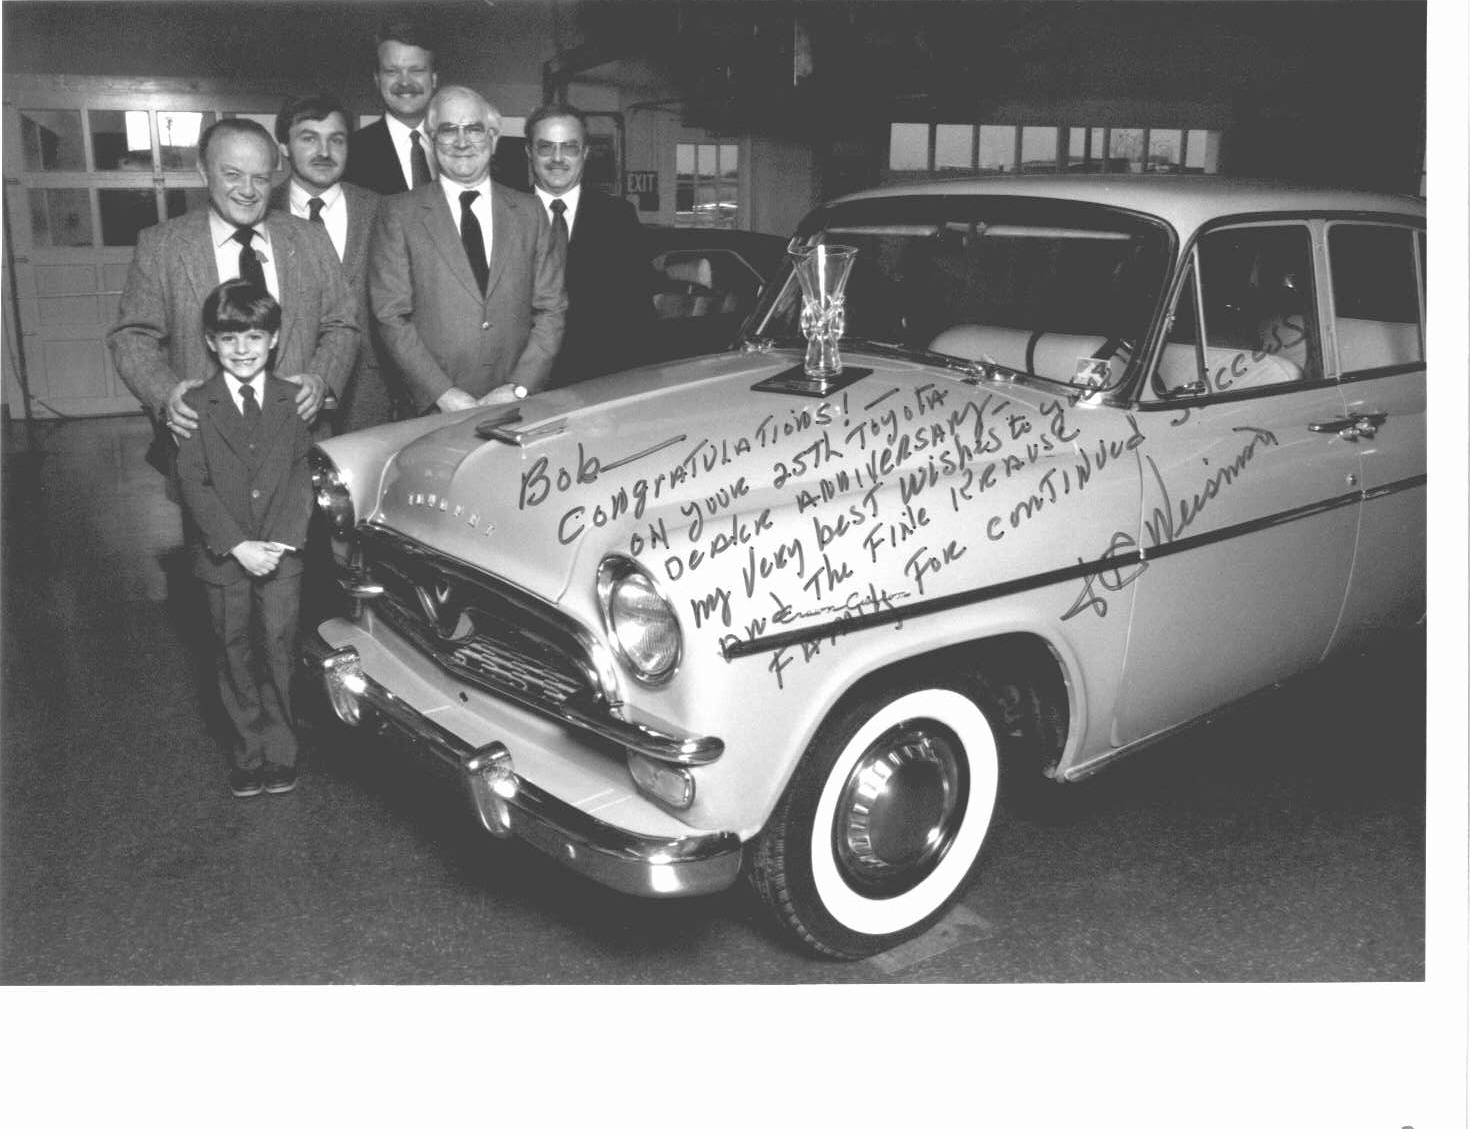 Matt Krause, Robert B Krause, Robert J Krause & Harry Krause with two Mid Atlantic Toyota Executives - Krause Toyota's 25th Anniv